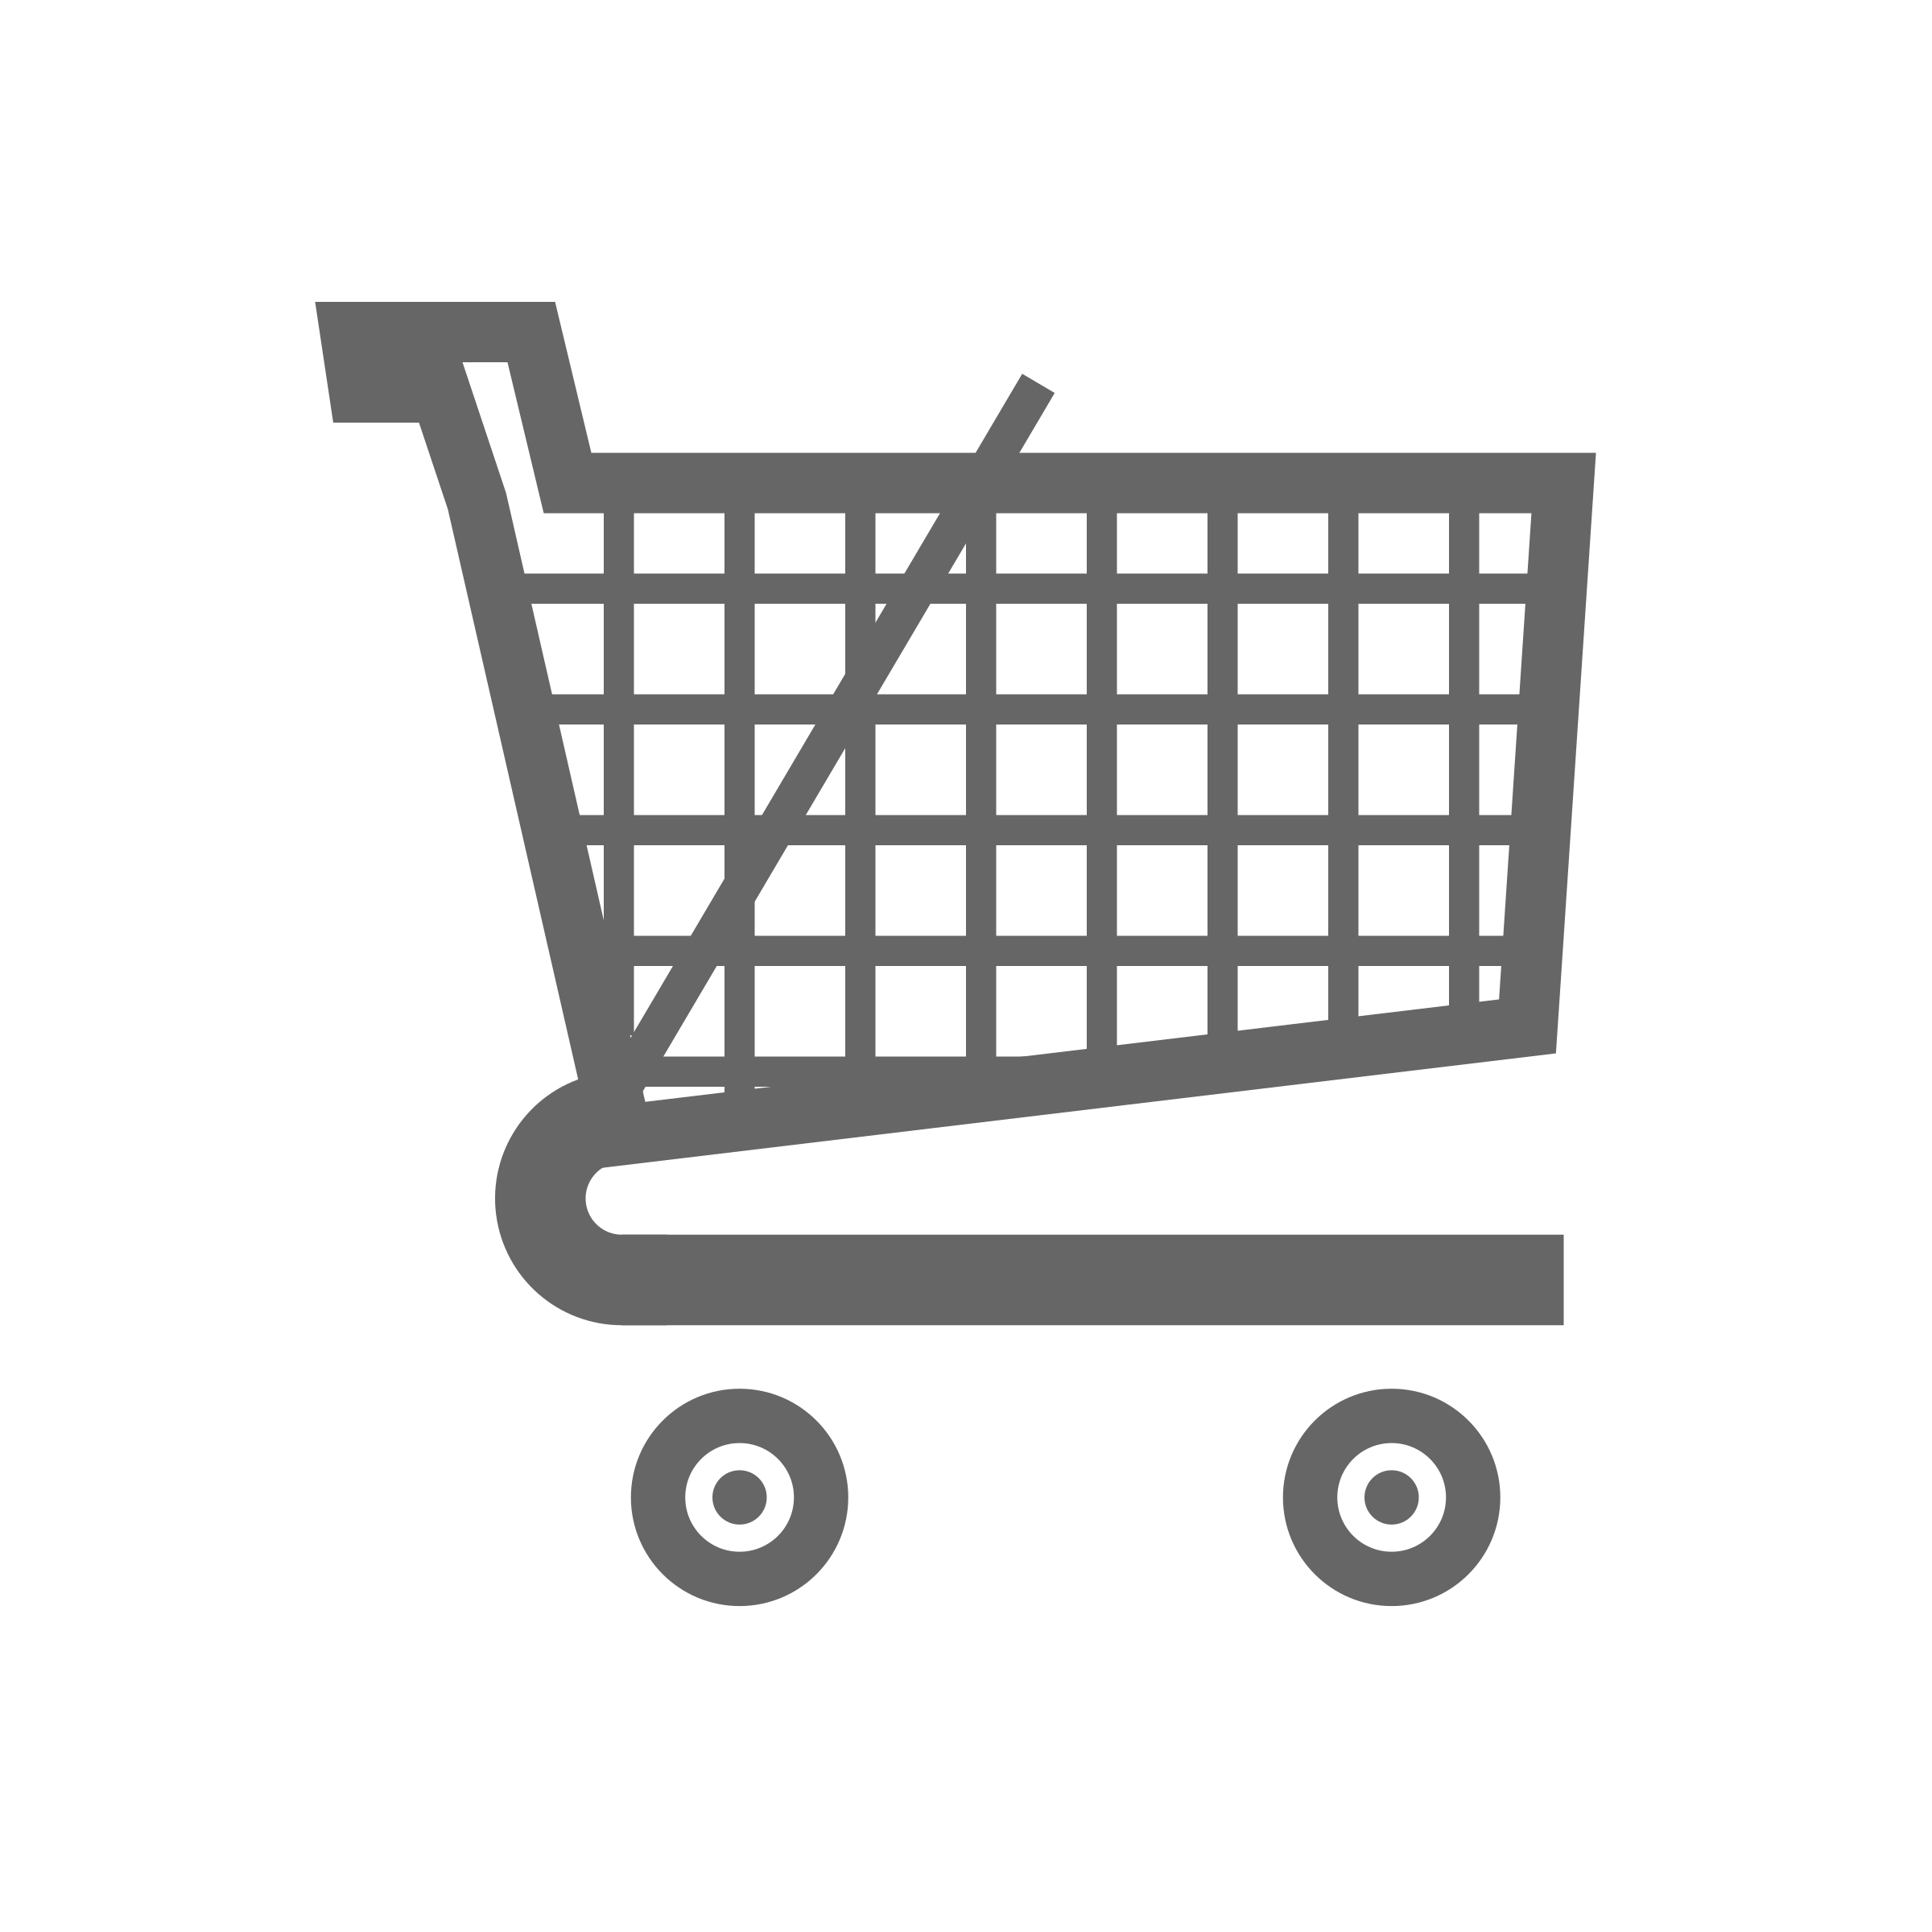 Cart clipart trolly Clipart small Cart small Cart